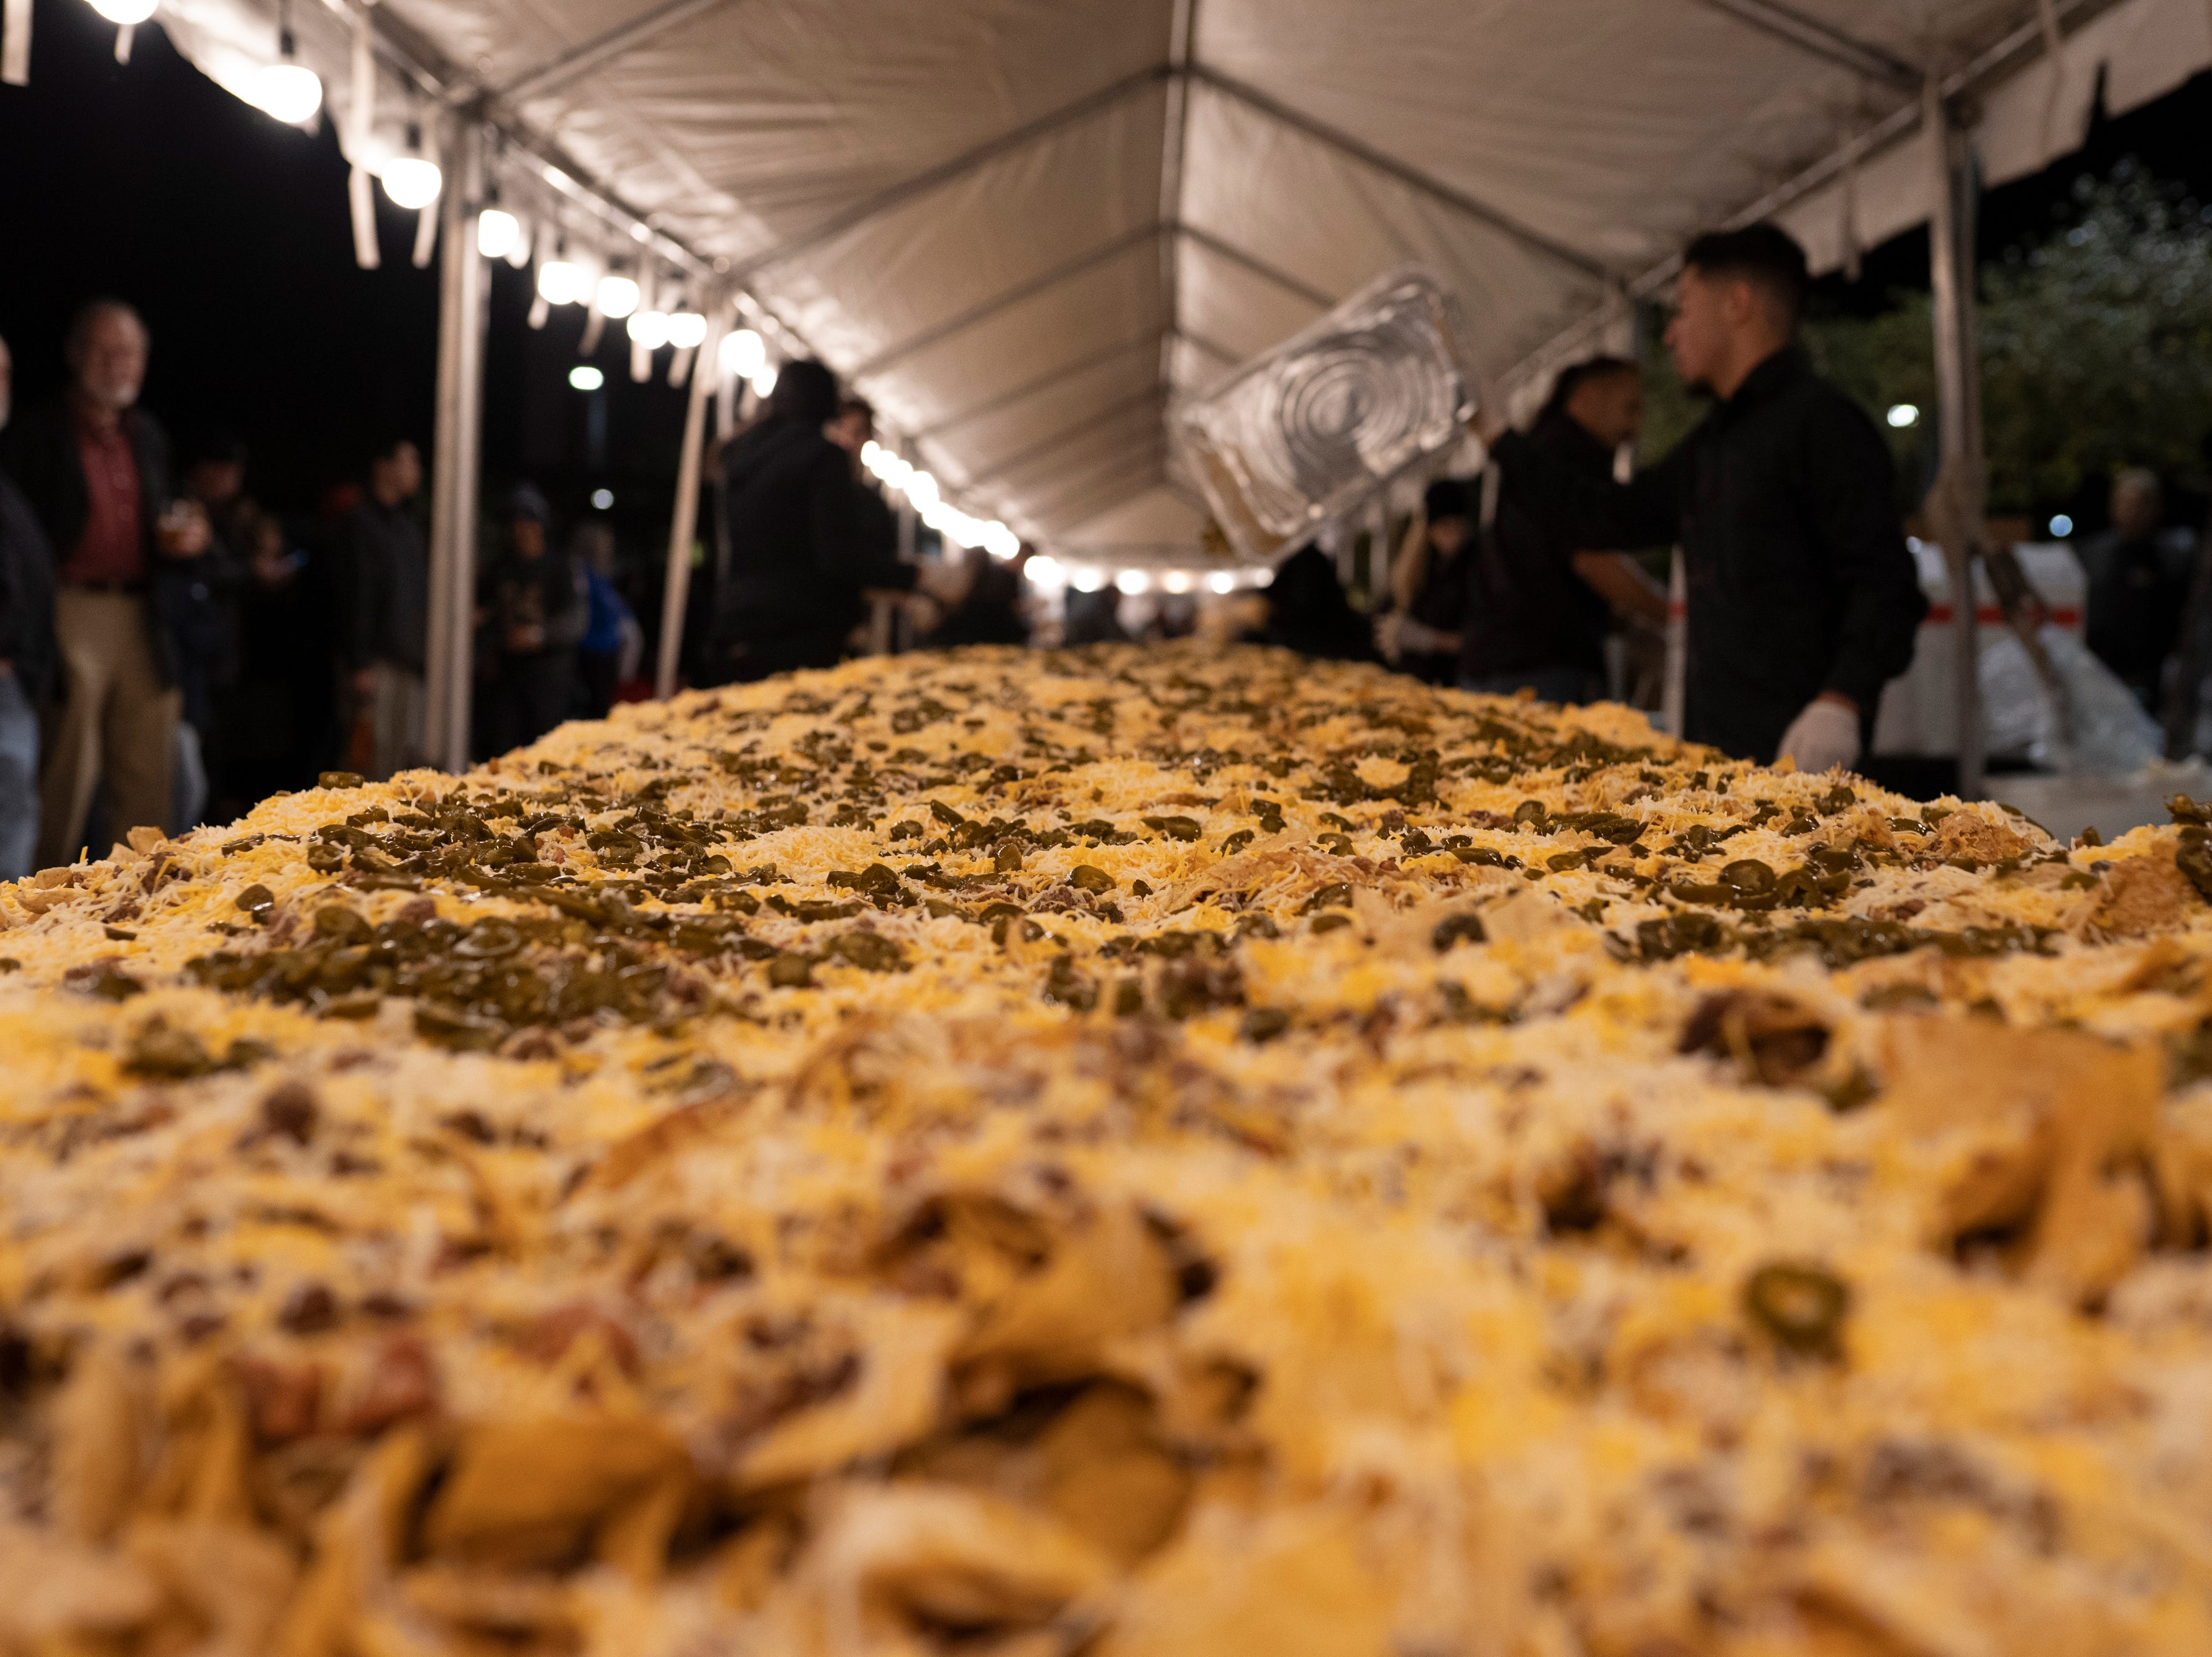 The 5,039-pound, 110-foot nachos made Saturday, Nov. 10, 2018, in downtown Las Cruces unofficially set the record for world's largest serving of nachos.